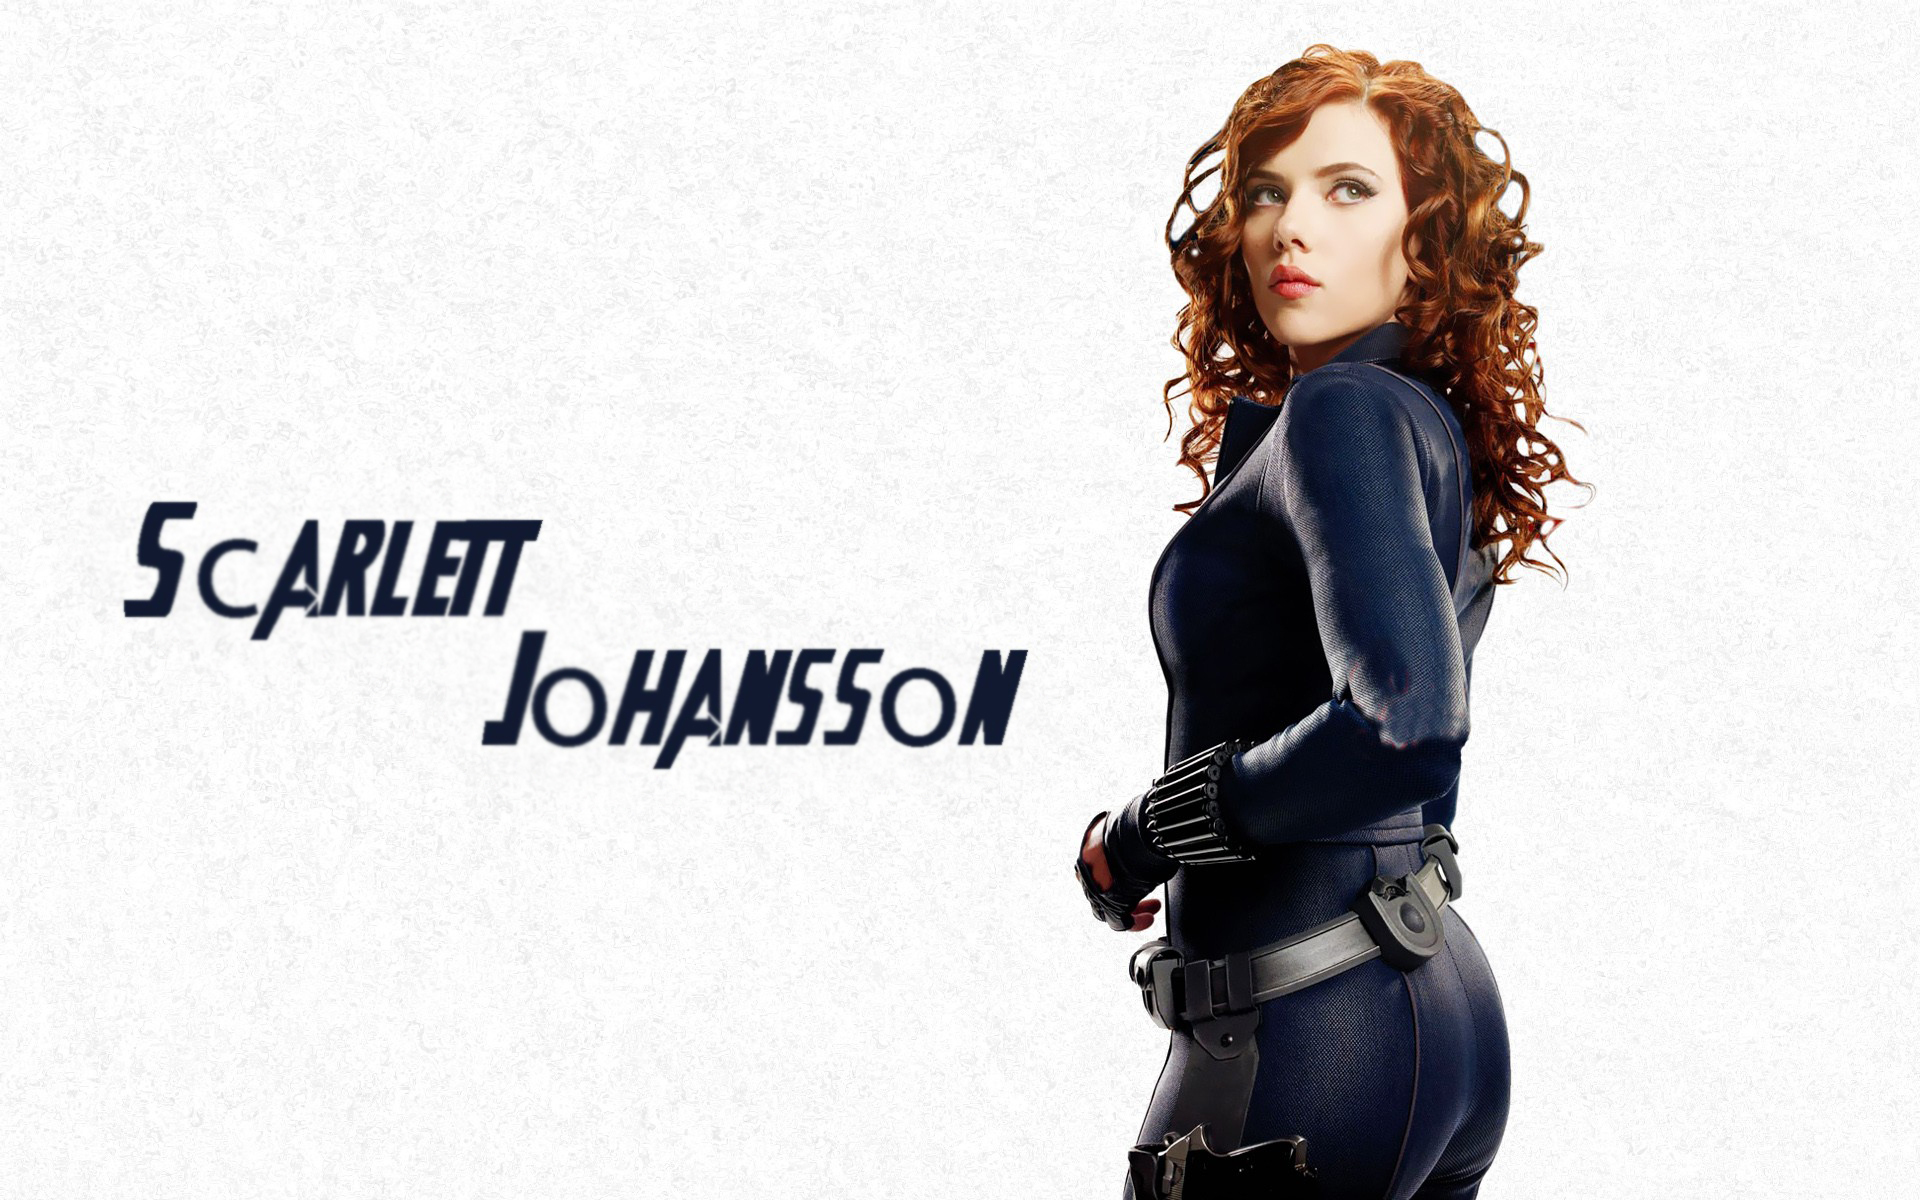 Scarlett Johansson HD Wallpaper in black